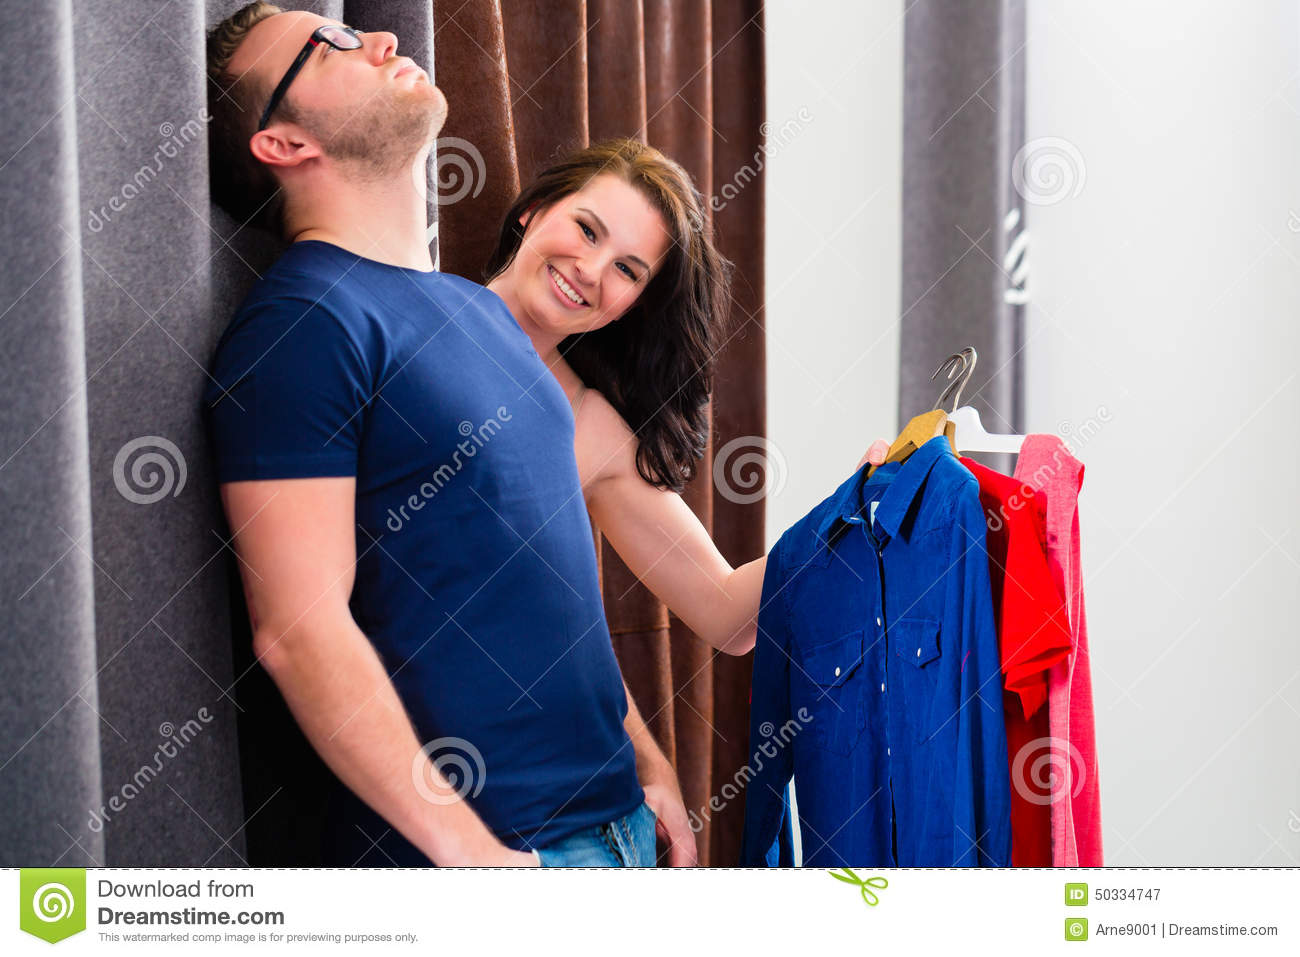 Woman In Changing Shop Room